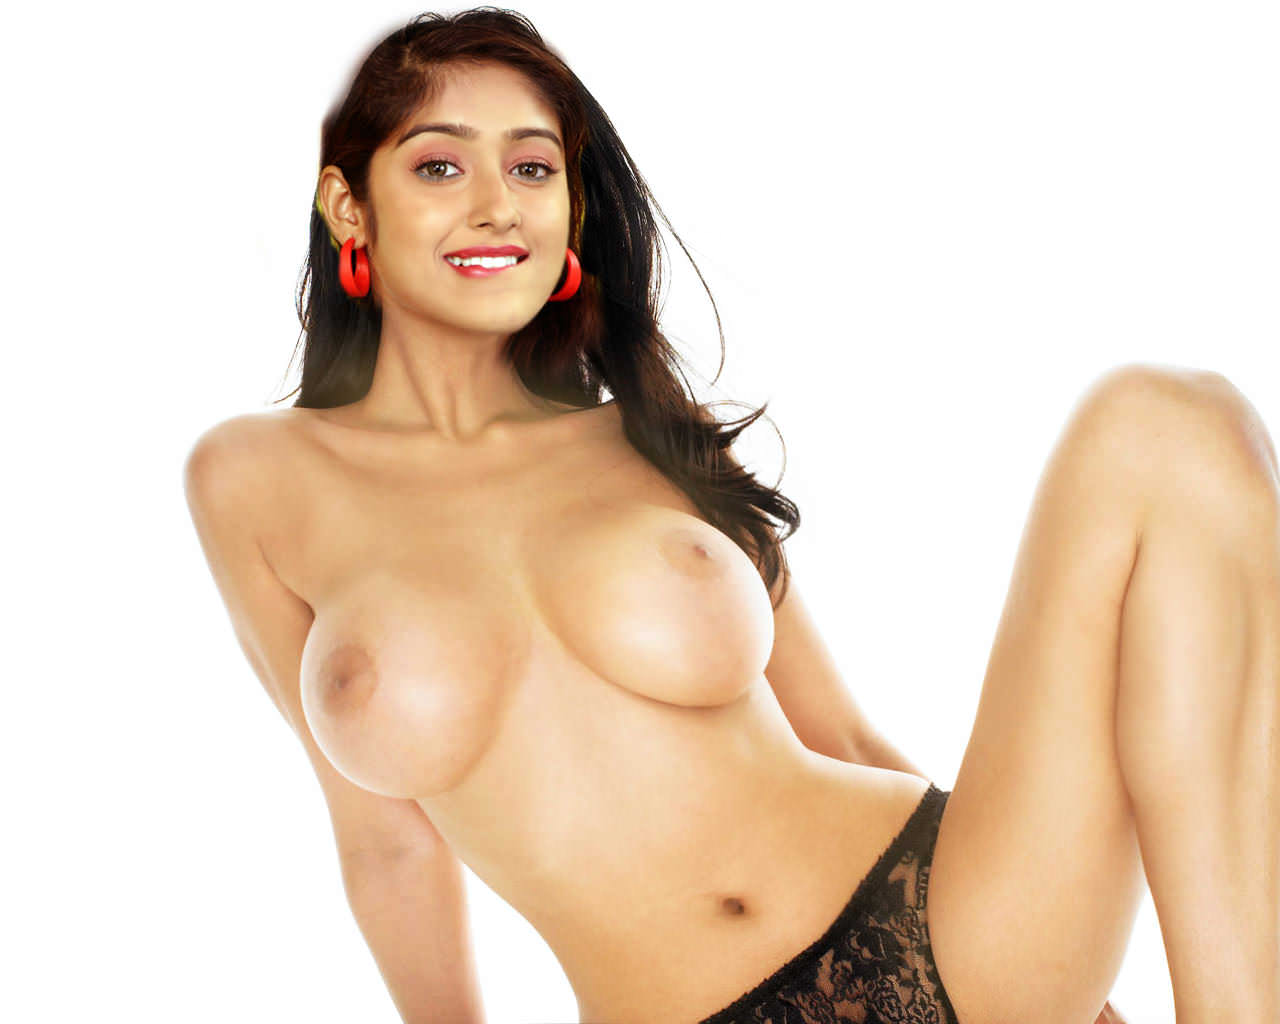 Fake naked picture gallery of bollywood actresses